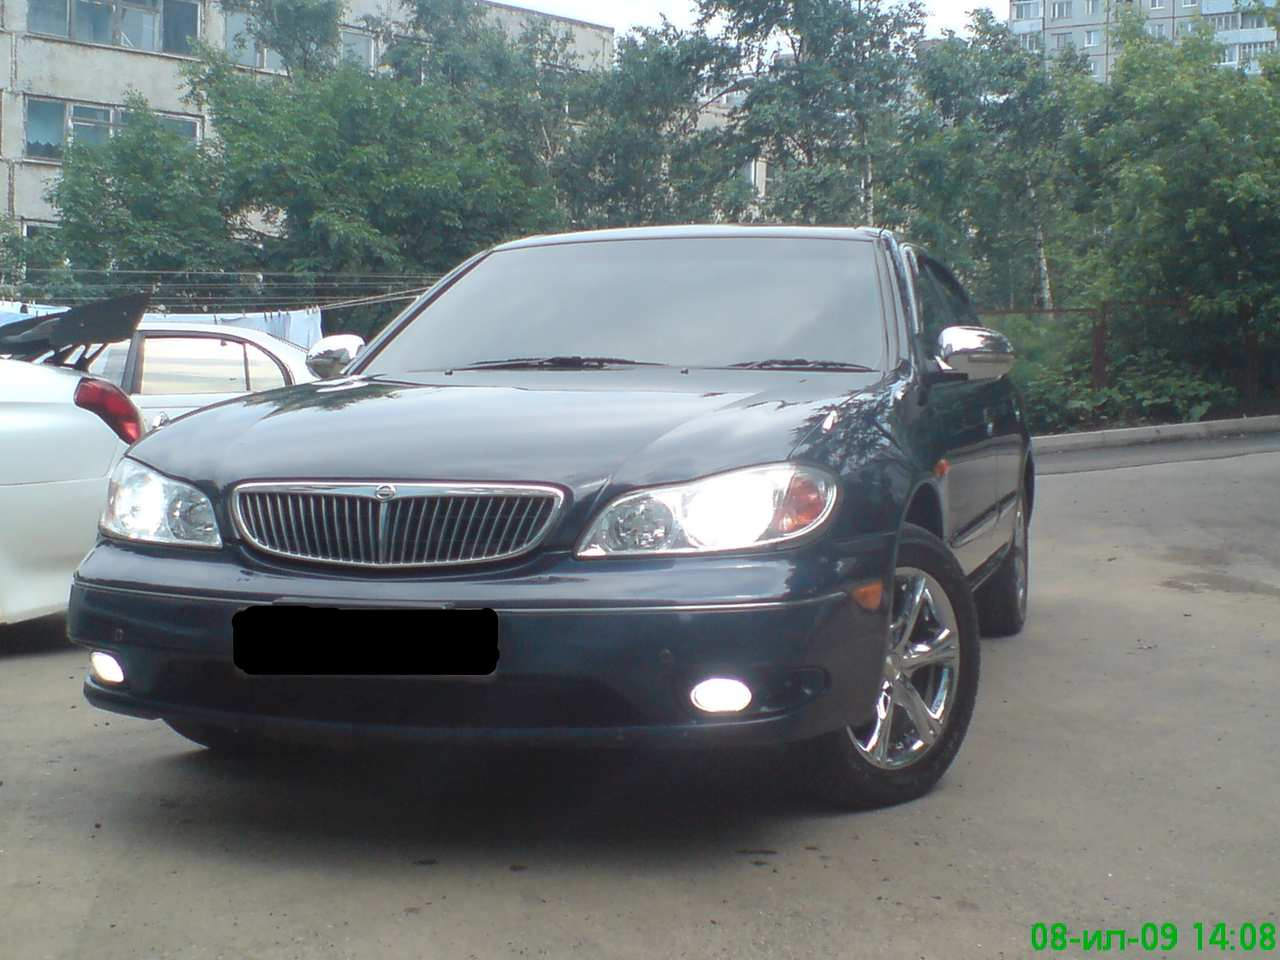 2001 Nissan Cefiro Pictures 2 0l Gasoline Ff